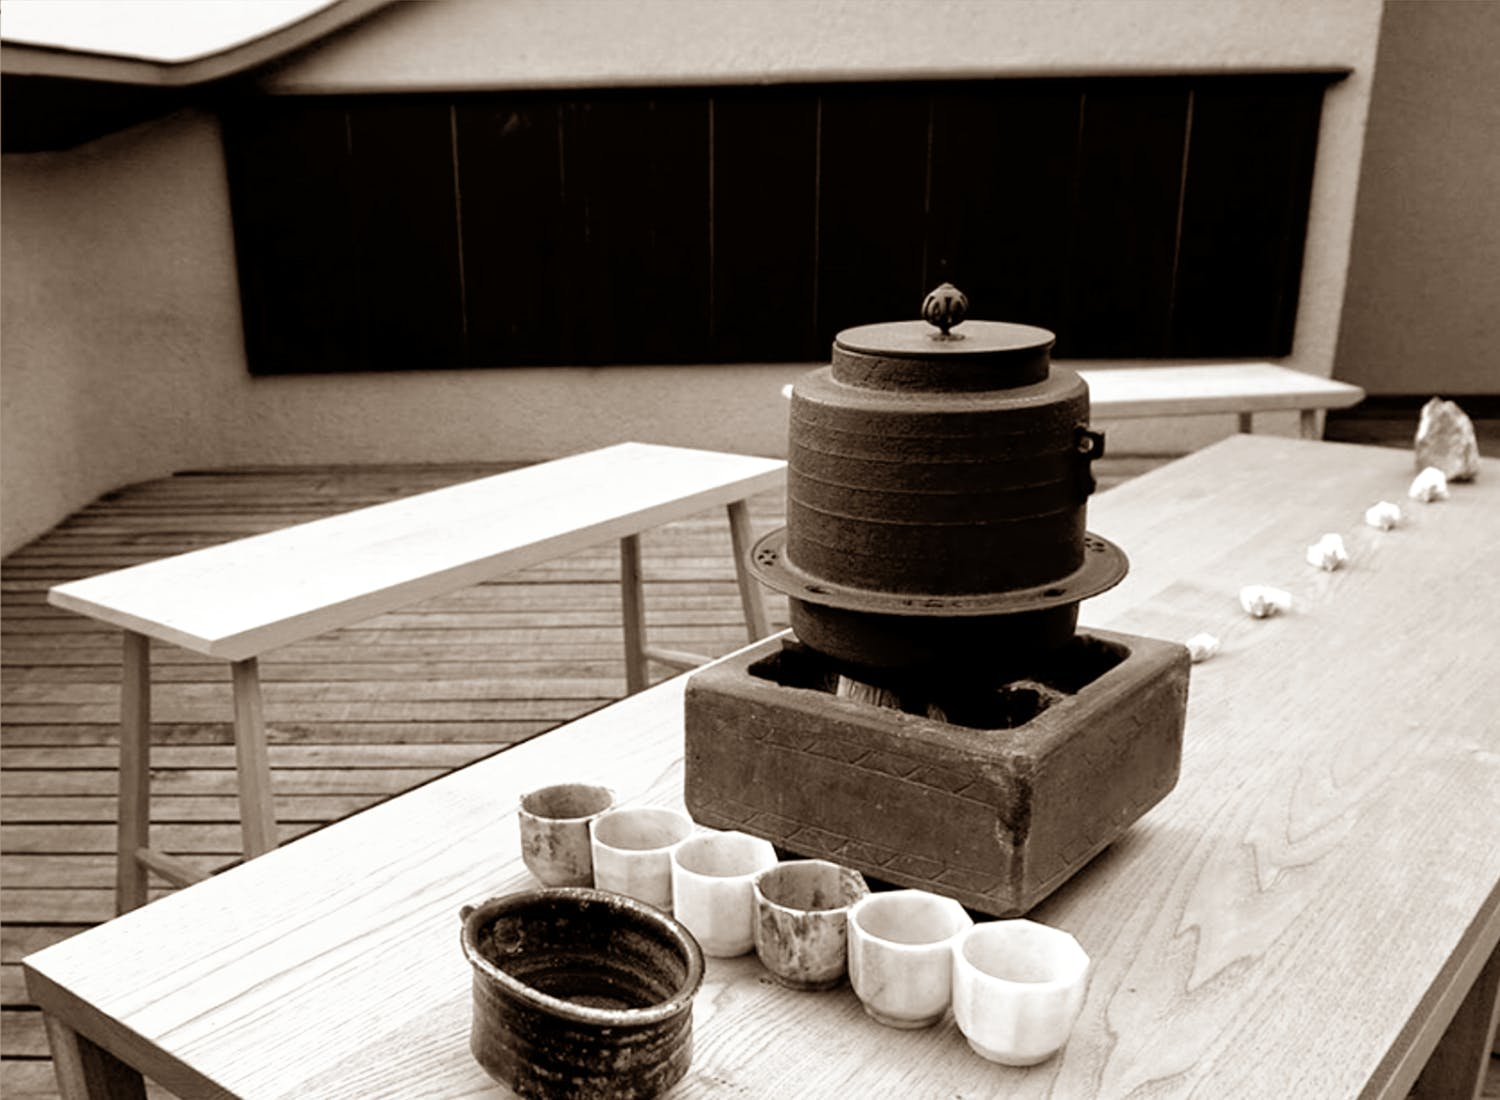 Shimaya Stays Kyoto Japanese Tea Ceremony - Open-air tea gathering at rooftop of Komatsu Residences